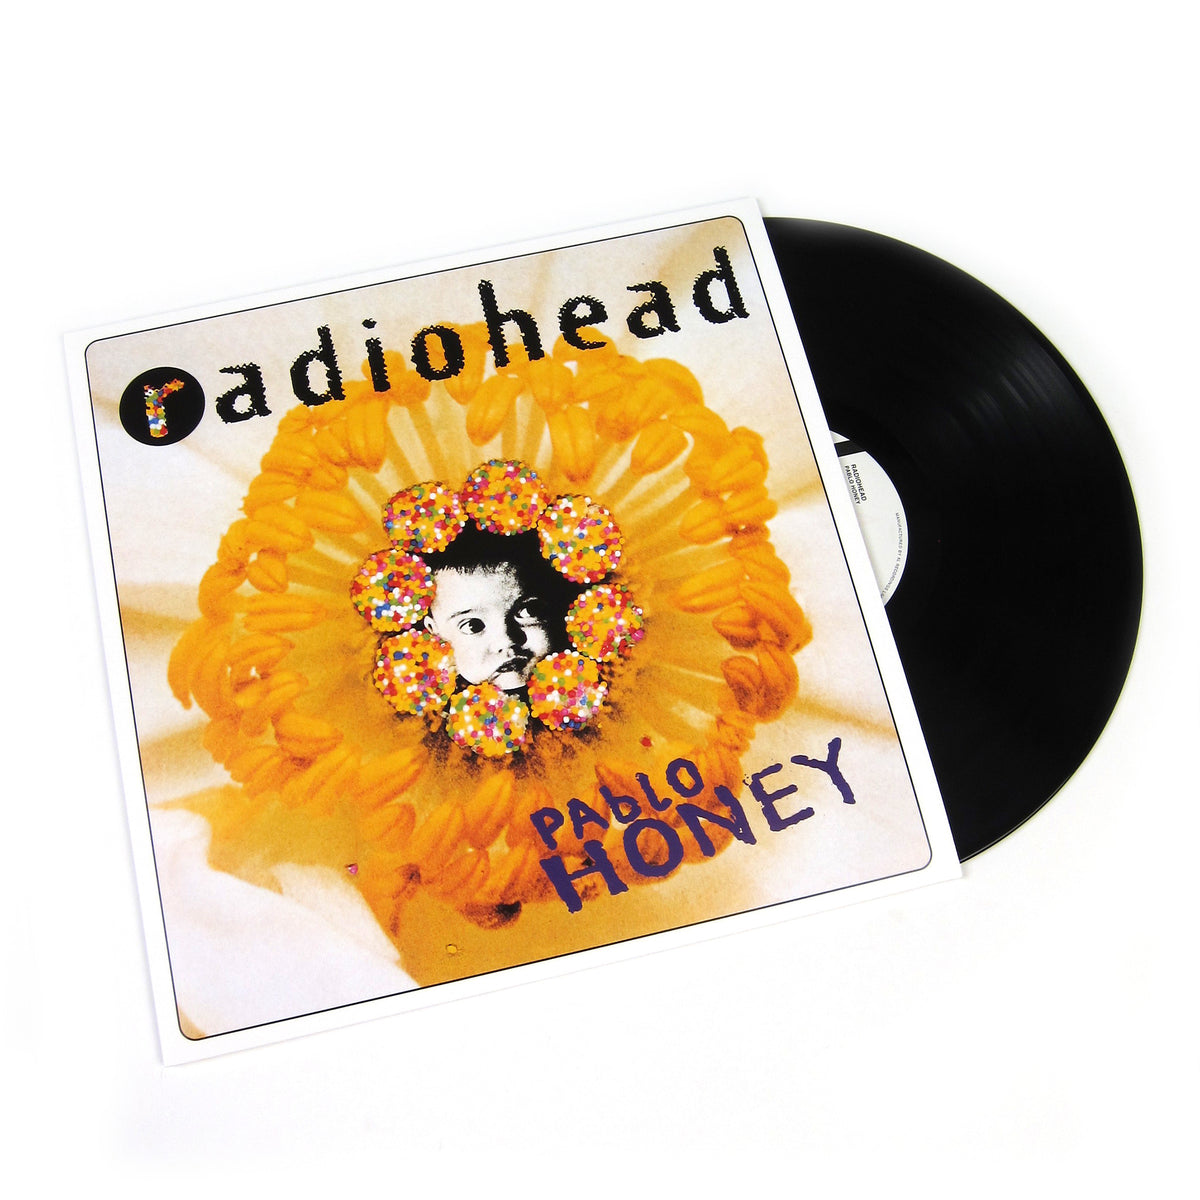 Radiohead: Pablo Honey Vinyl LP